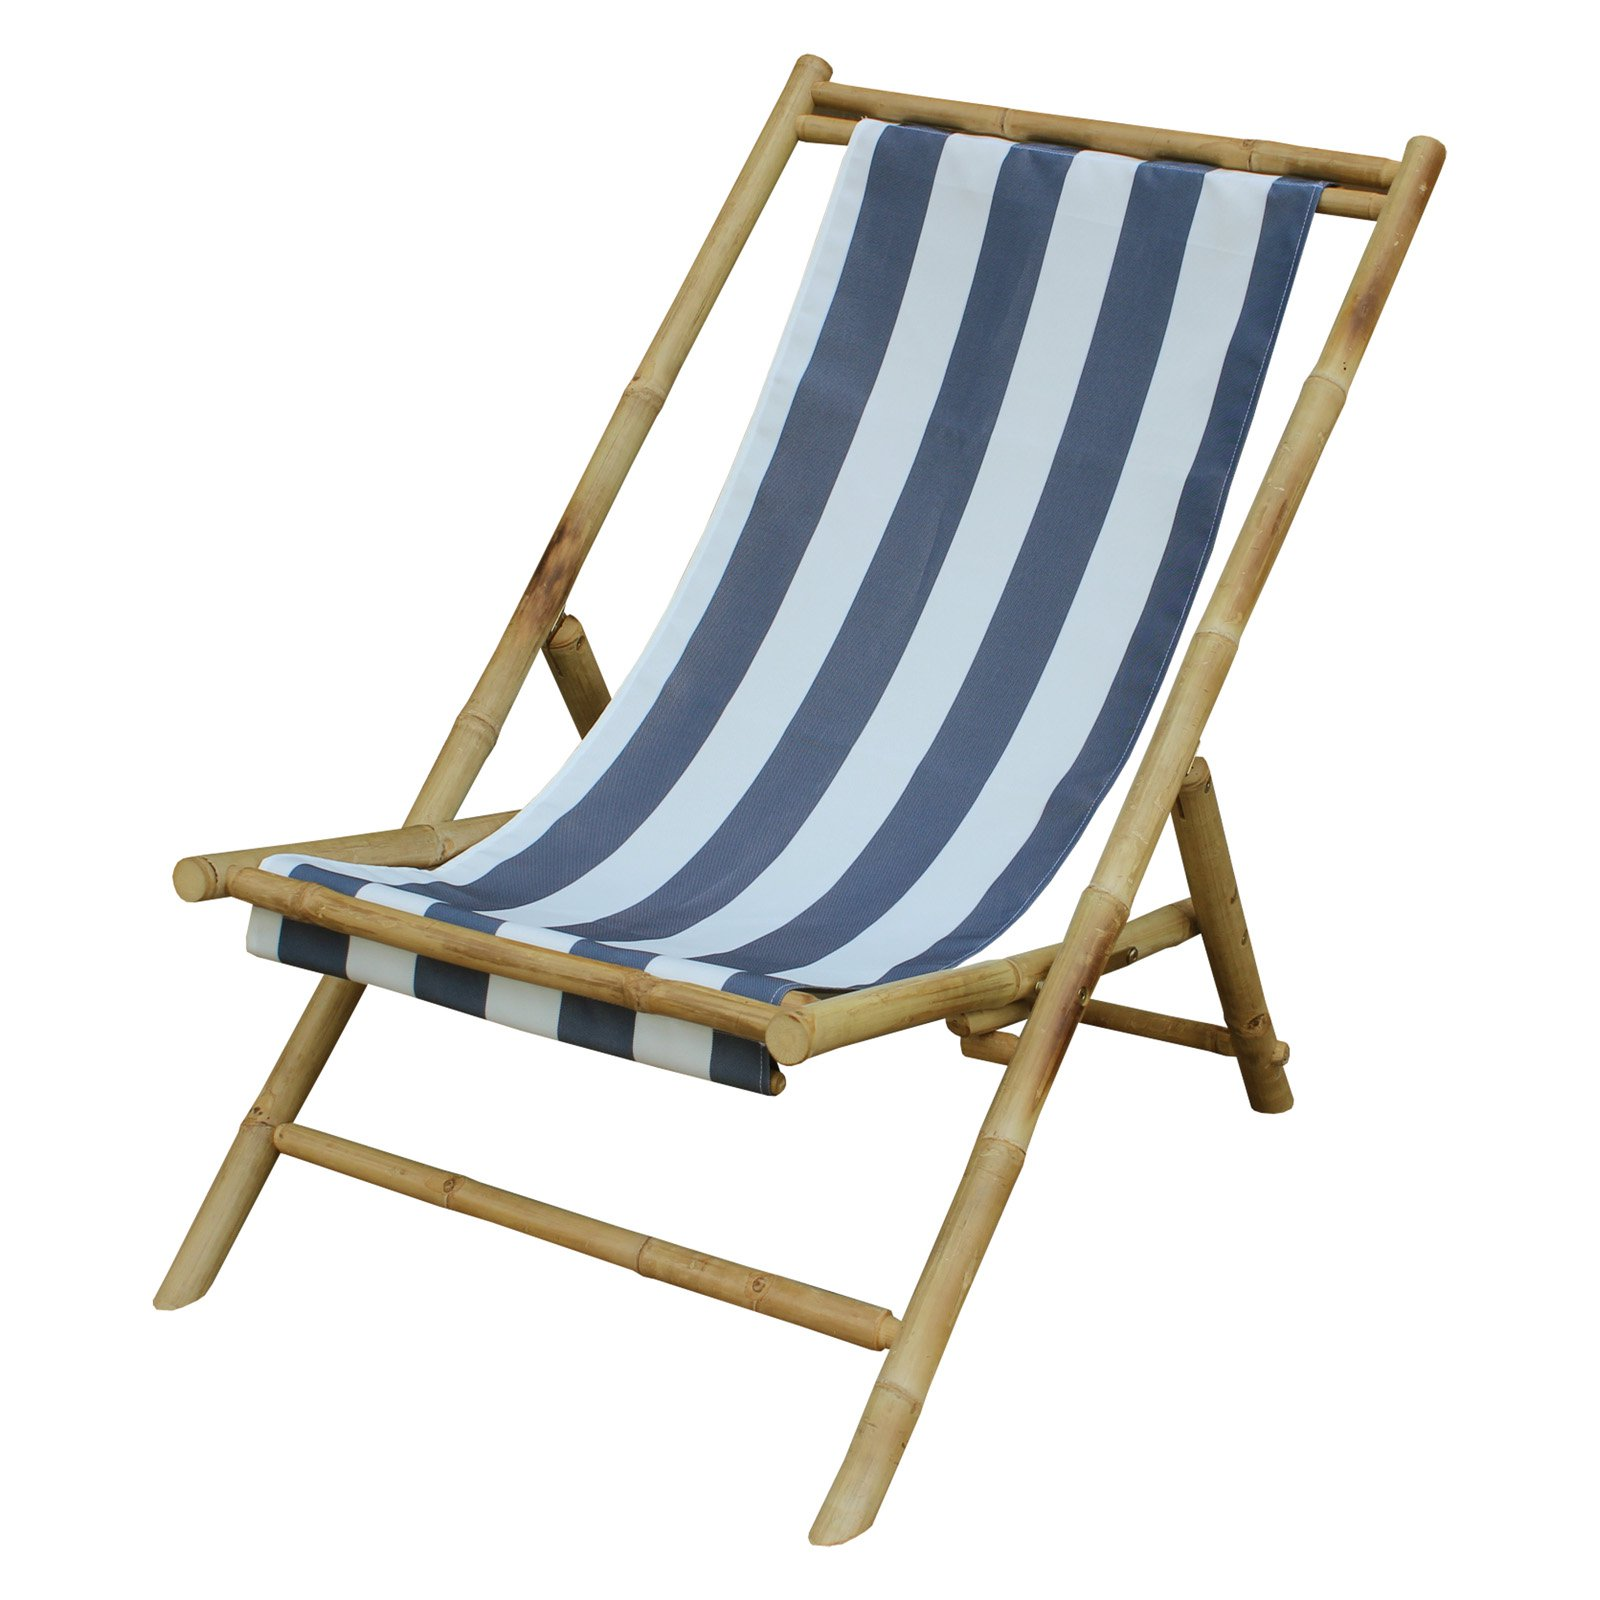 canvas sling chair ice cream table and chairs statra folding bamboo relax walmart com